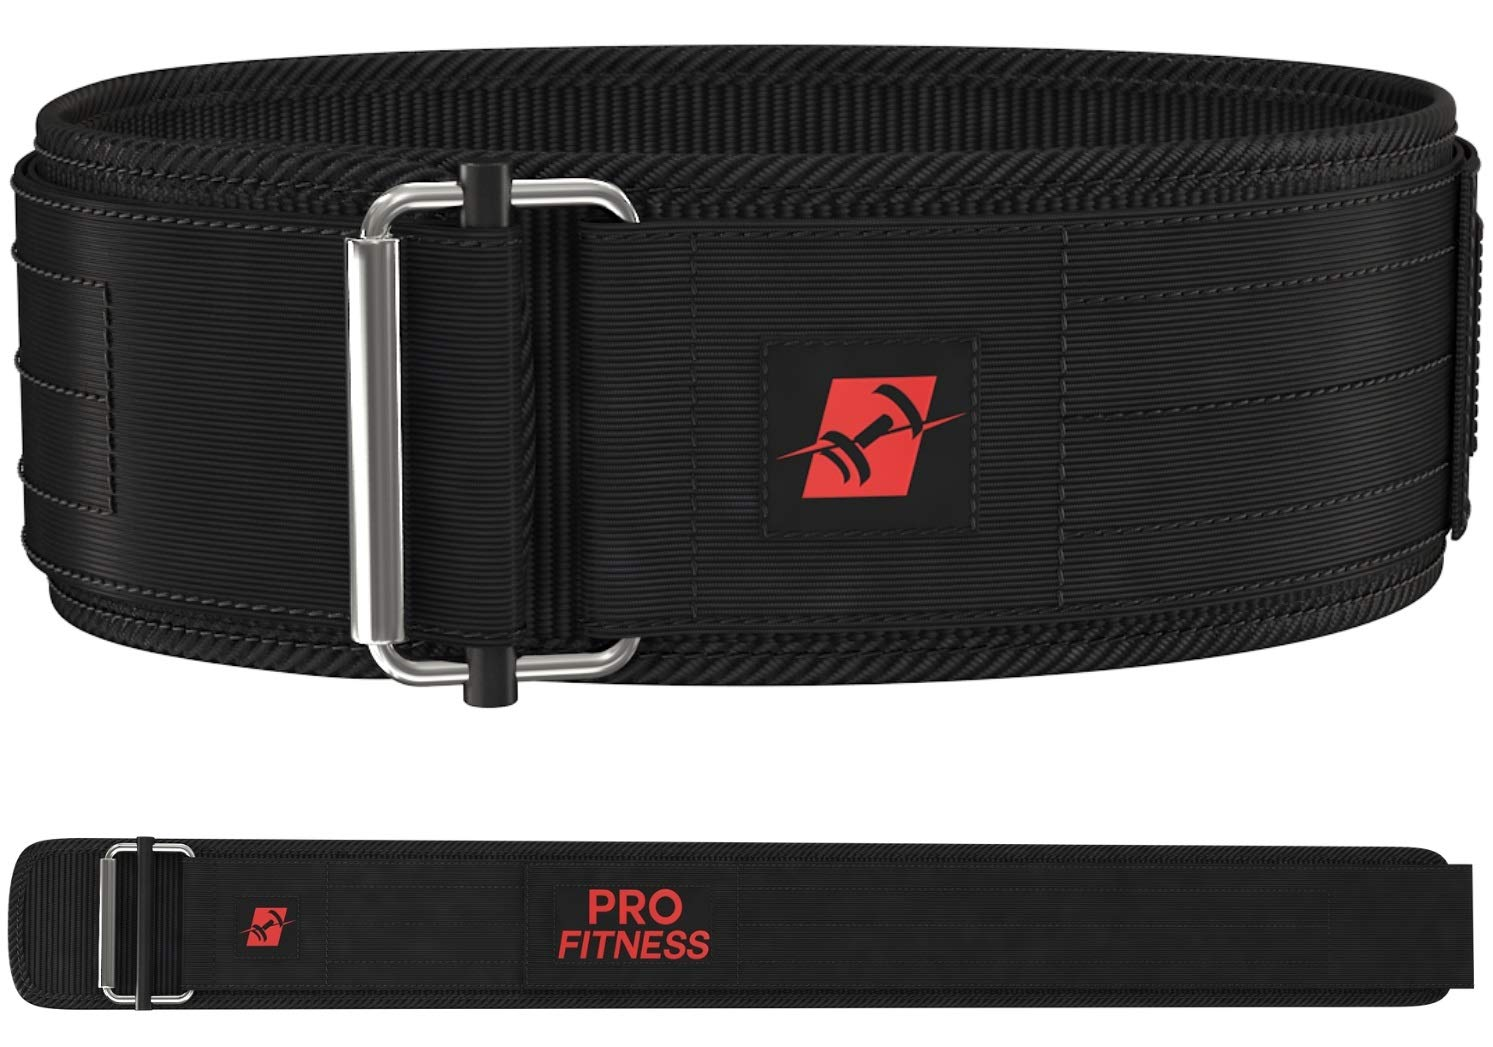 ProFitness Weight Lifting Belt for Women (Small, Black/Red)